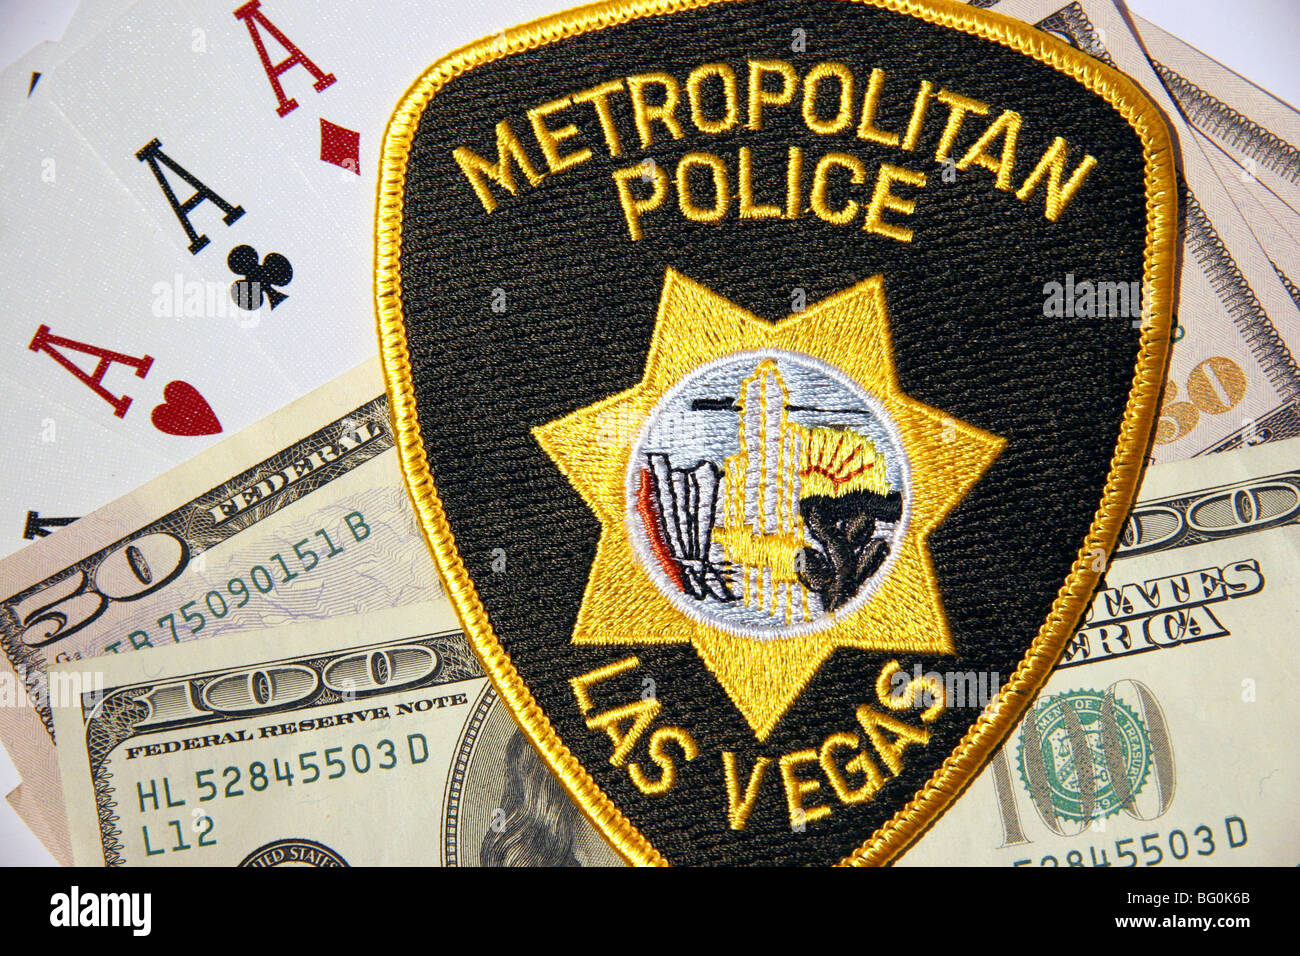 Ace cards, American dollars and patch of the Las Vegas Metropolitan Police Department - Stock Image